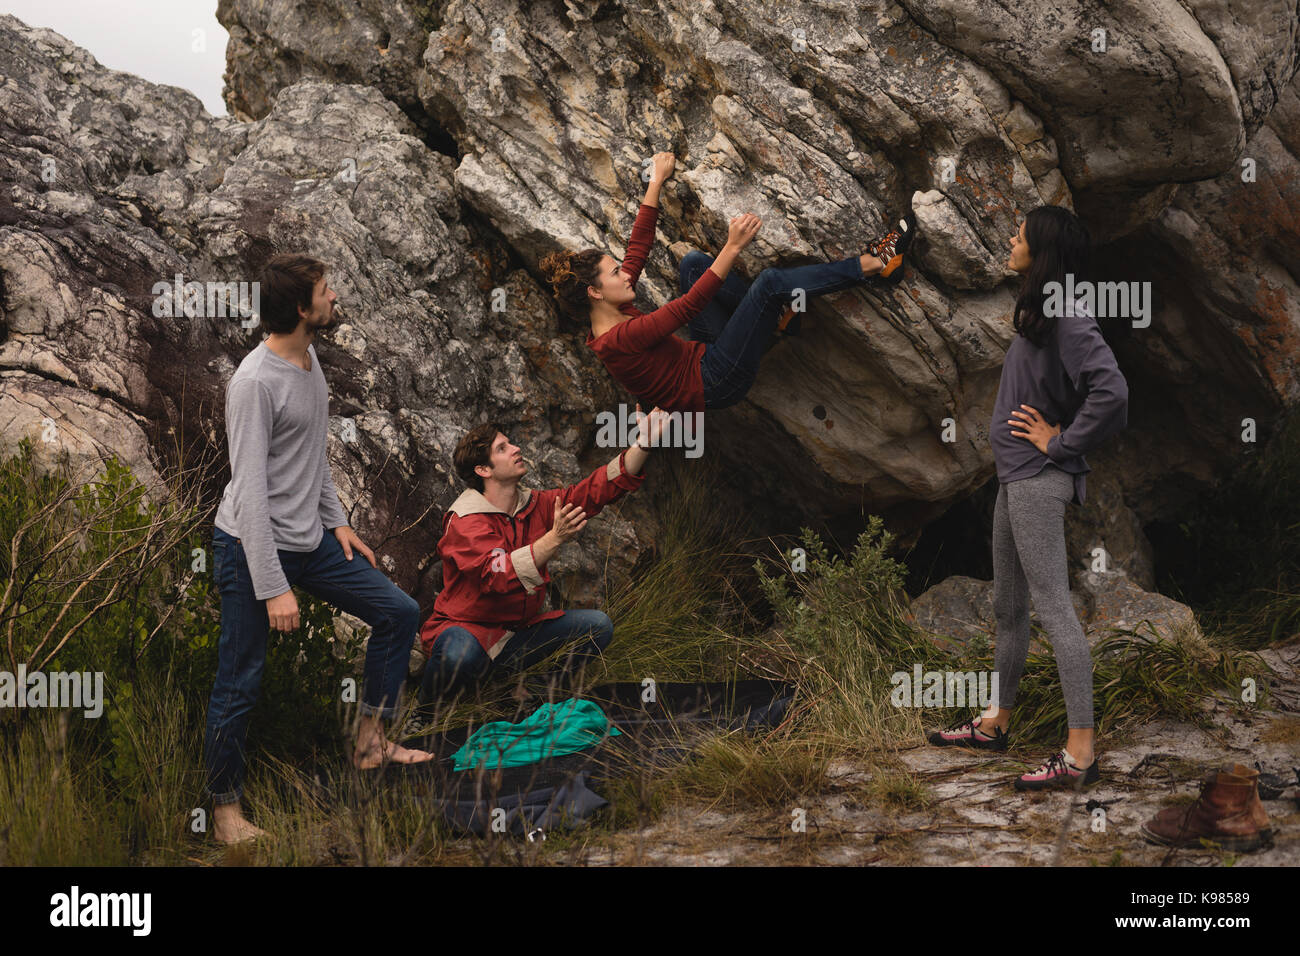 Friends assisting man in rock climbing on a sunny day - Stock Image